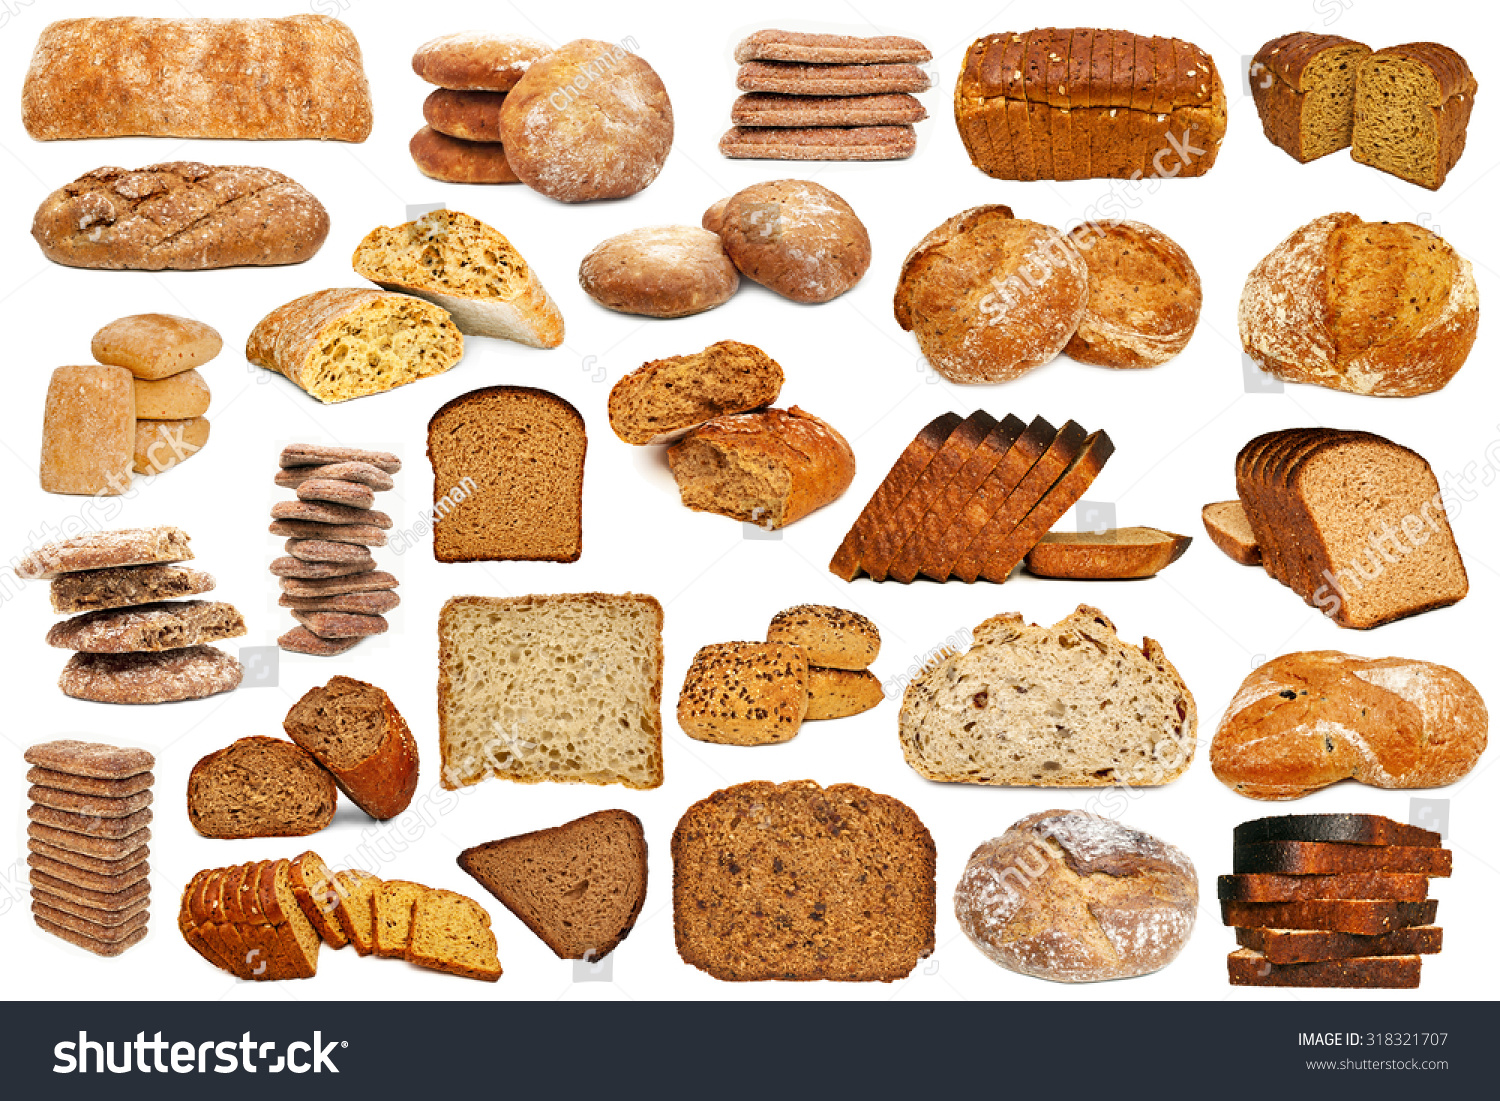 Kinds of Bread - How many have you ever had?